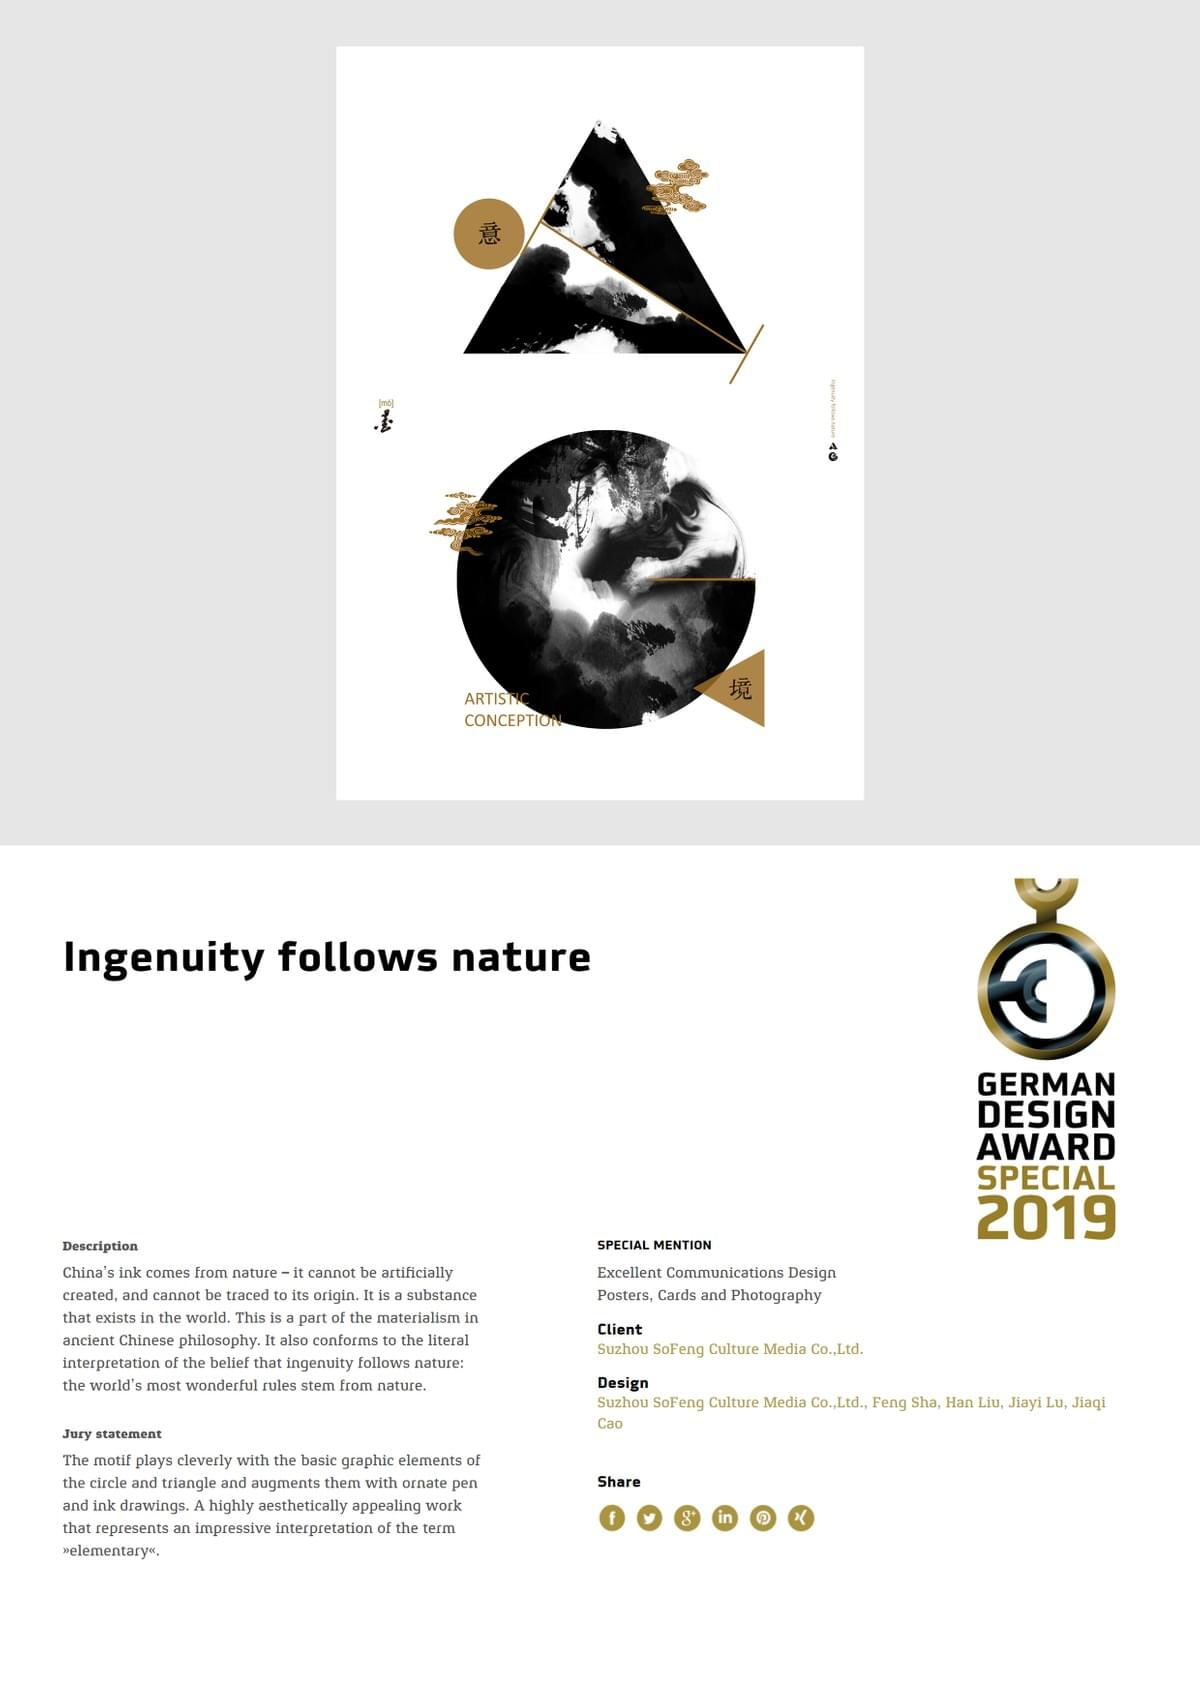 《Ingenuity follows nature》-2019 Special Award